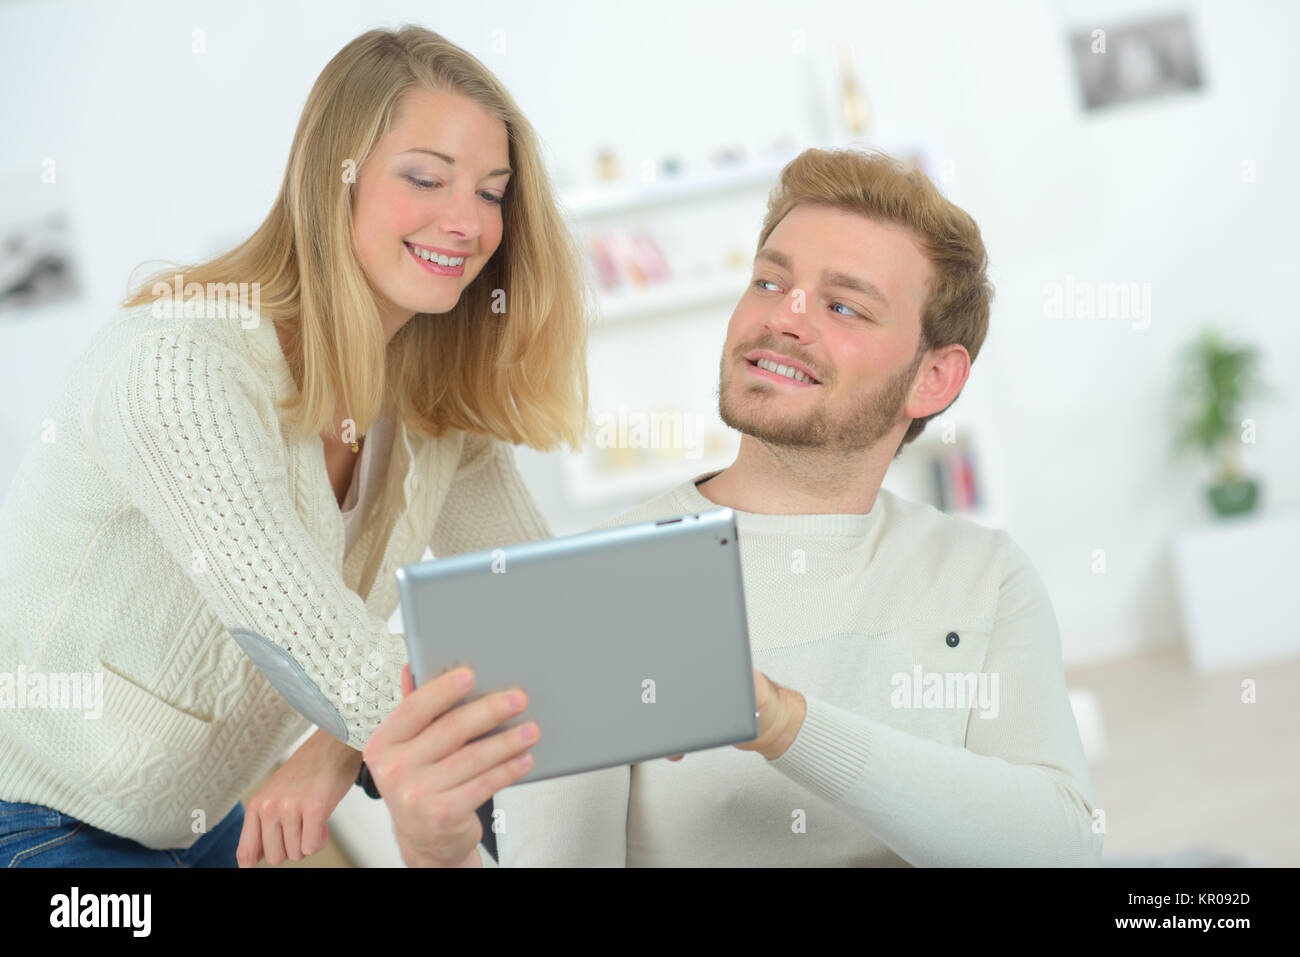 Couple in love with their tablet - Stock Image